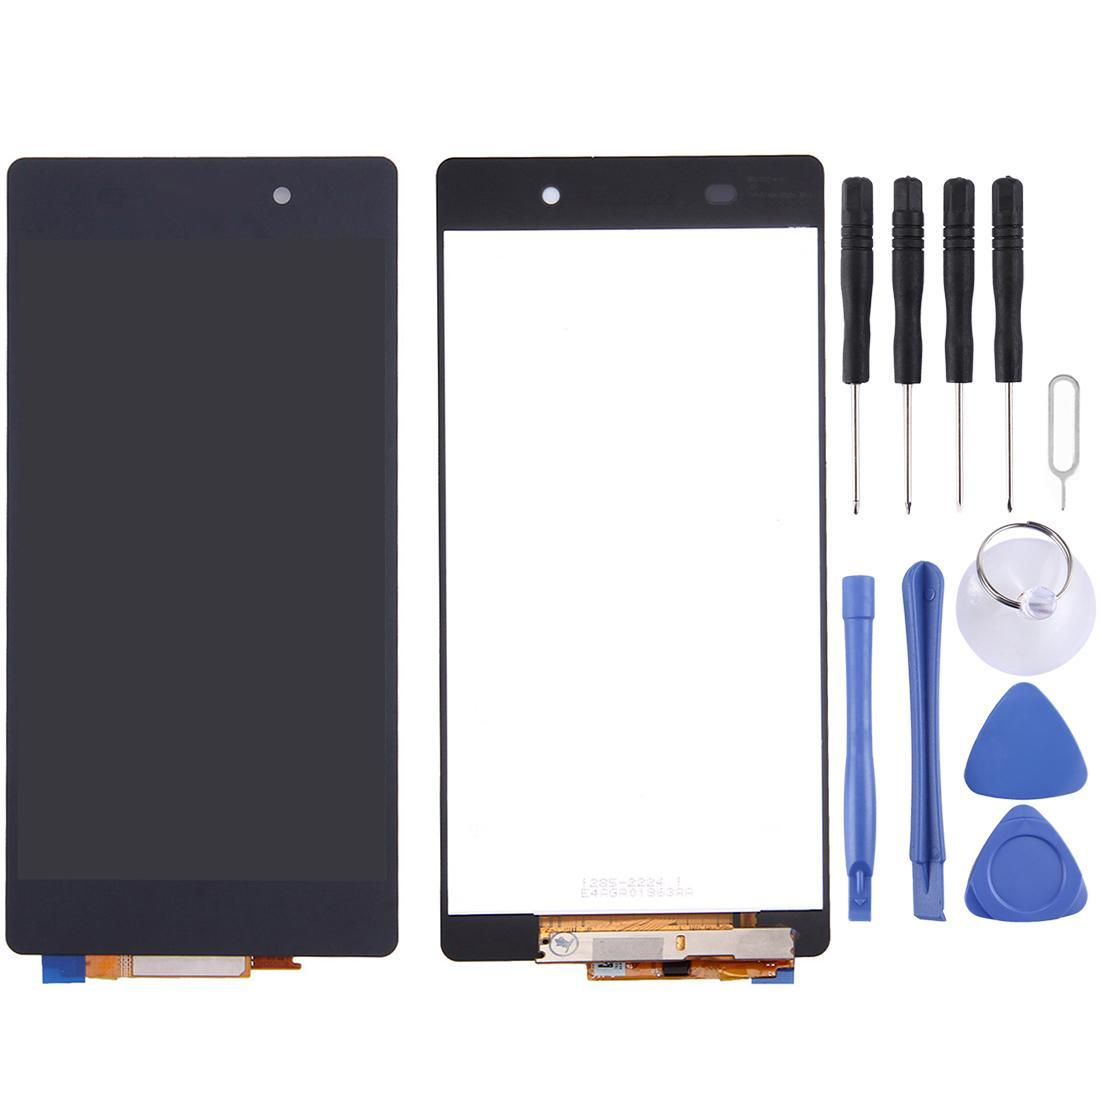 LCD Display + Touch Panel for Sony Xperia Z2 / L50W / D6503